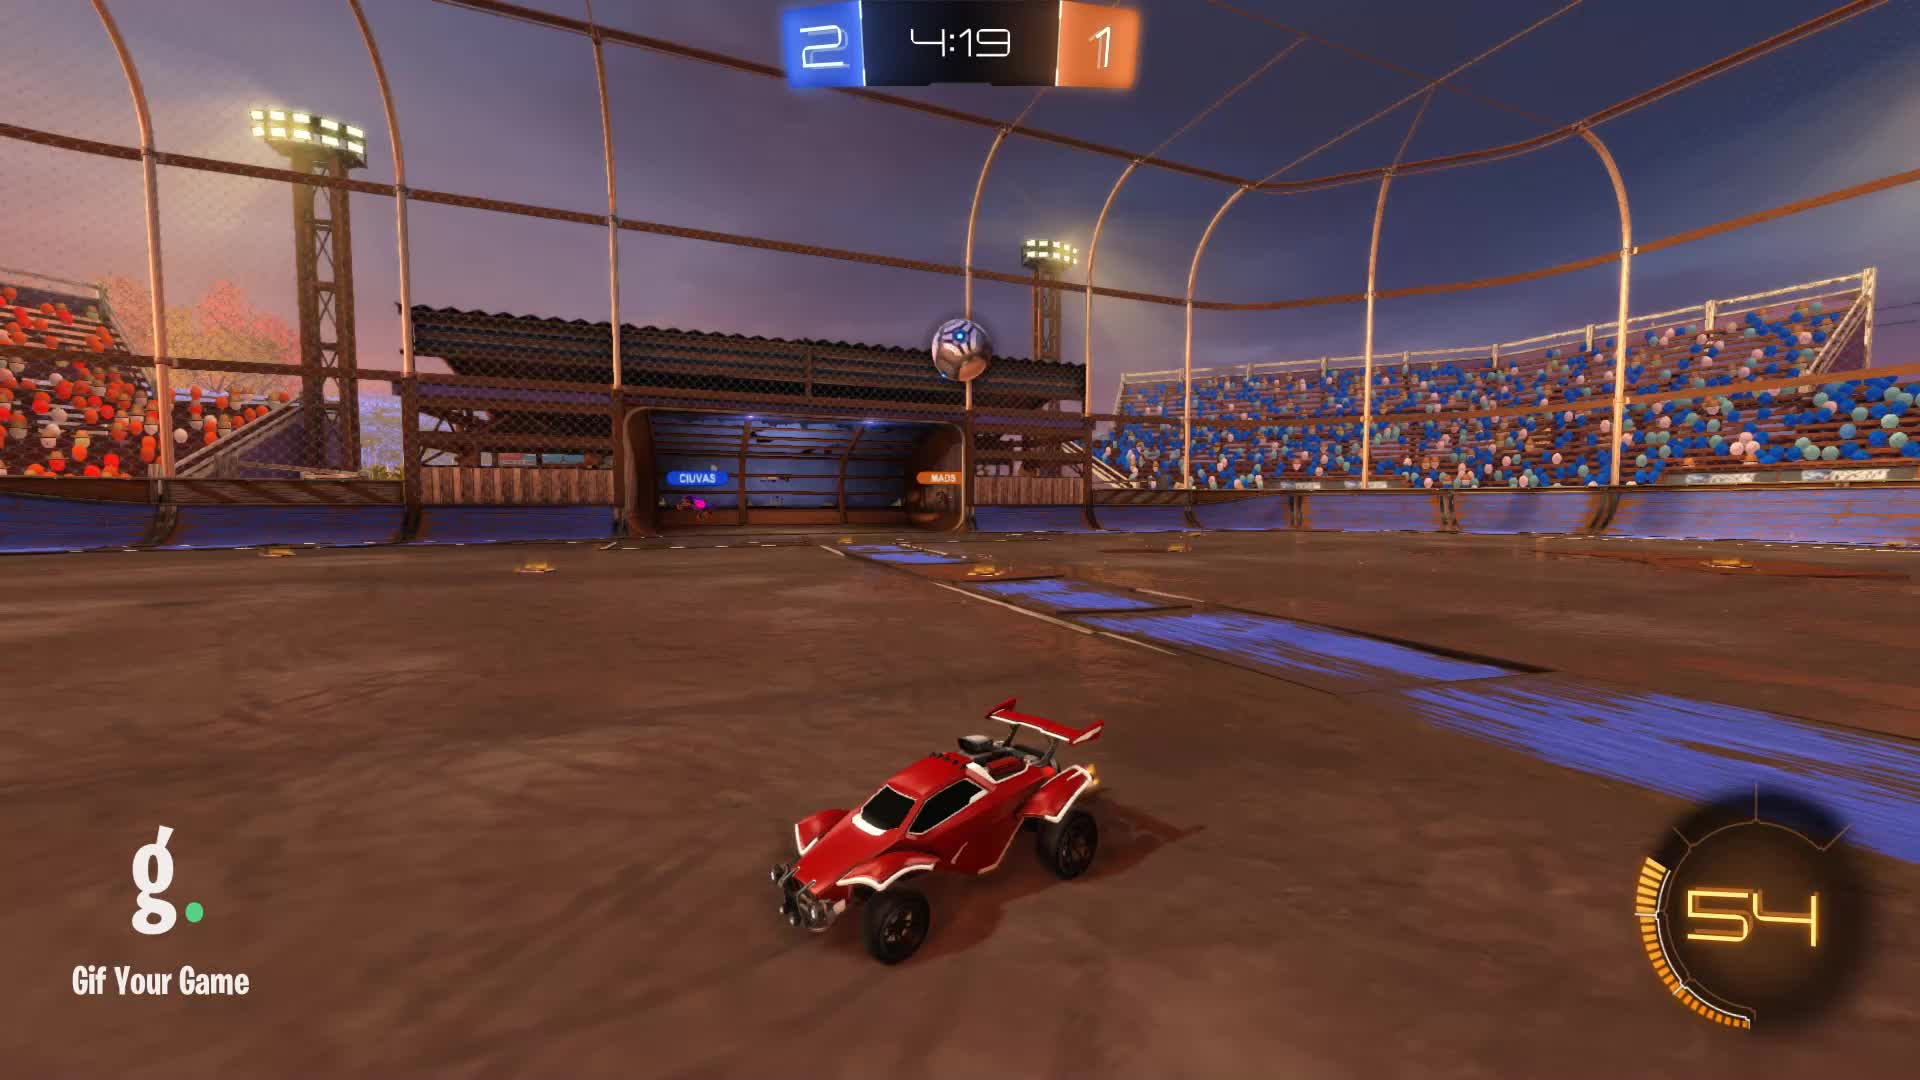 Gif Your Game, GifYourGame, Goal, Rocket League, RocketLeague, unknown multiplayer, Goal 4: unknown multiplayer GIFs